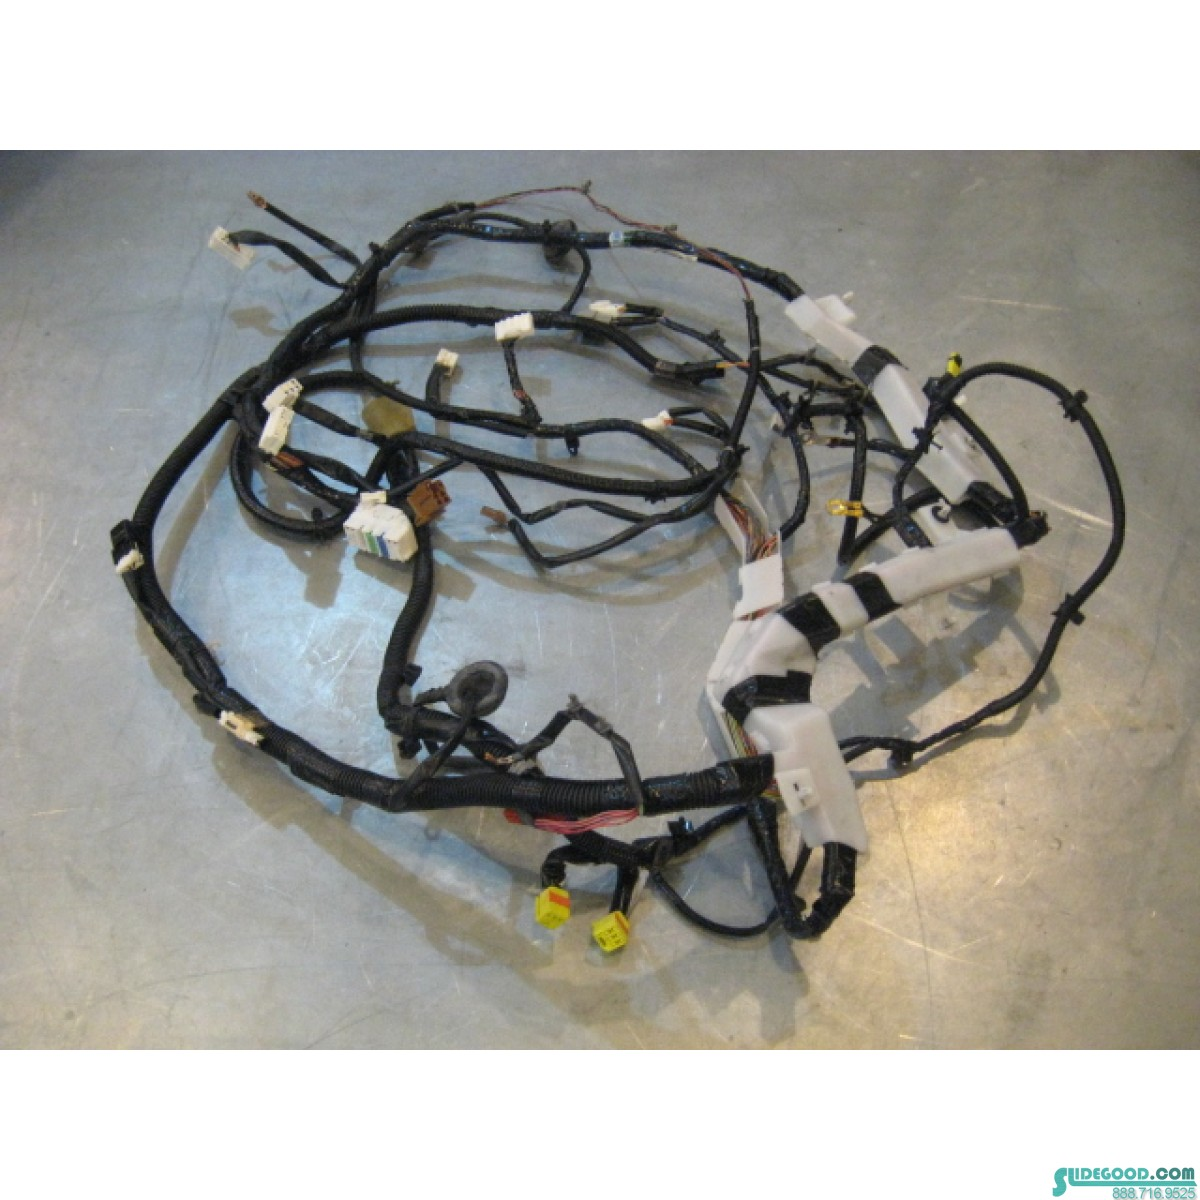 hight resolution of 07 nissan 350z body wiring harness 24014 ev00a r18282350z wiring harness 9